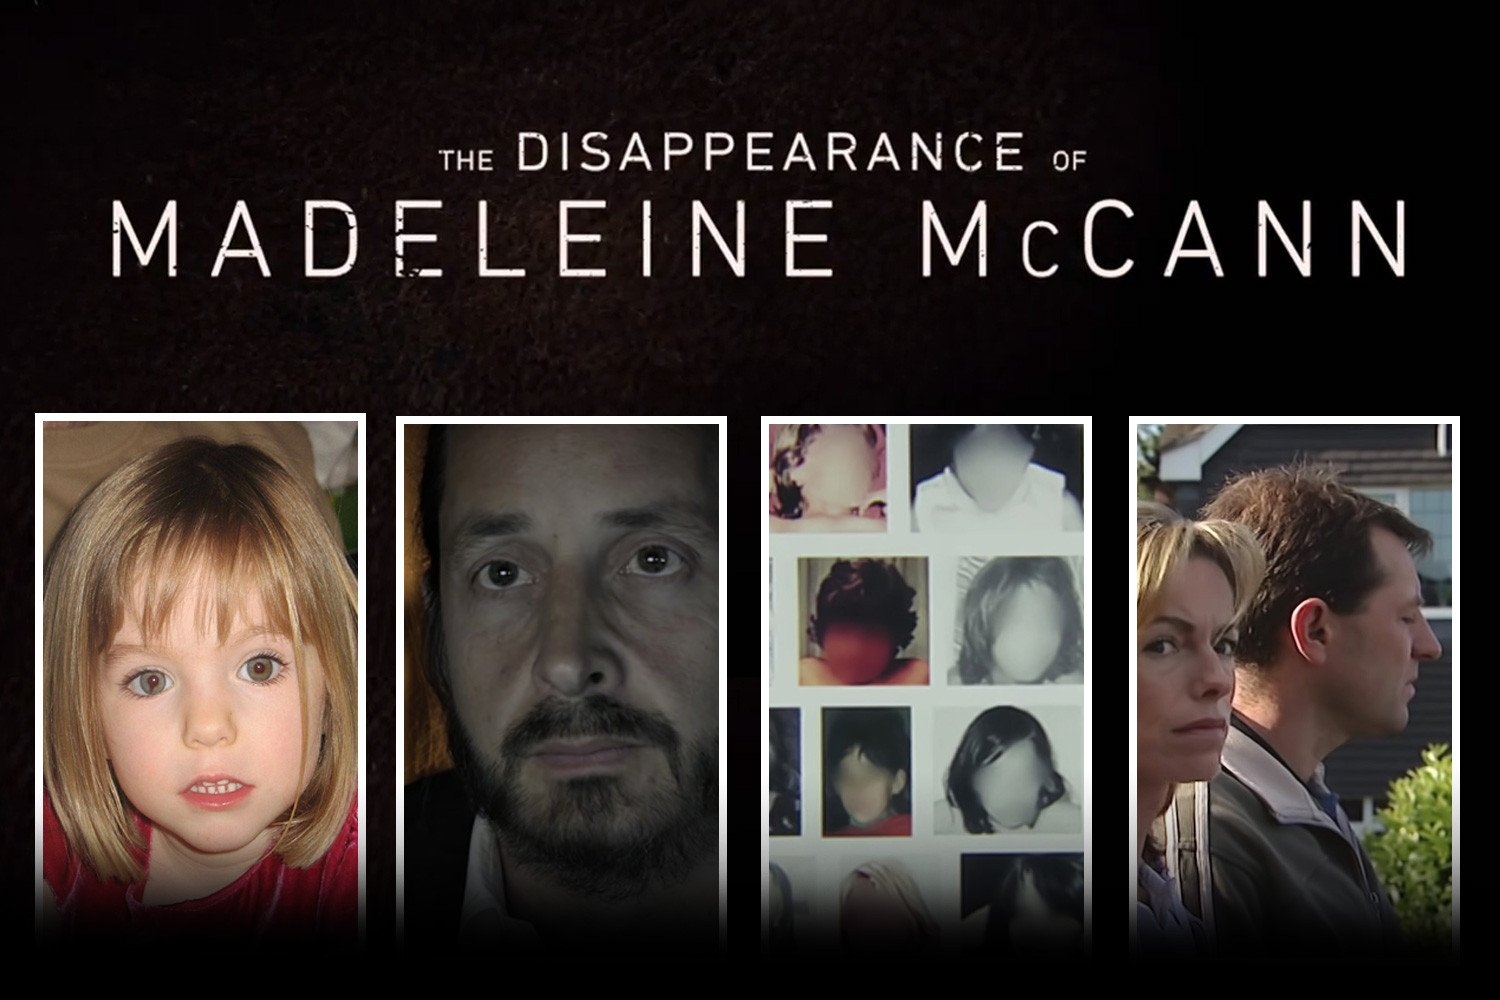 The Disappearance of Madeleine McCann : New documentary 2019 investigation